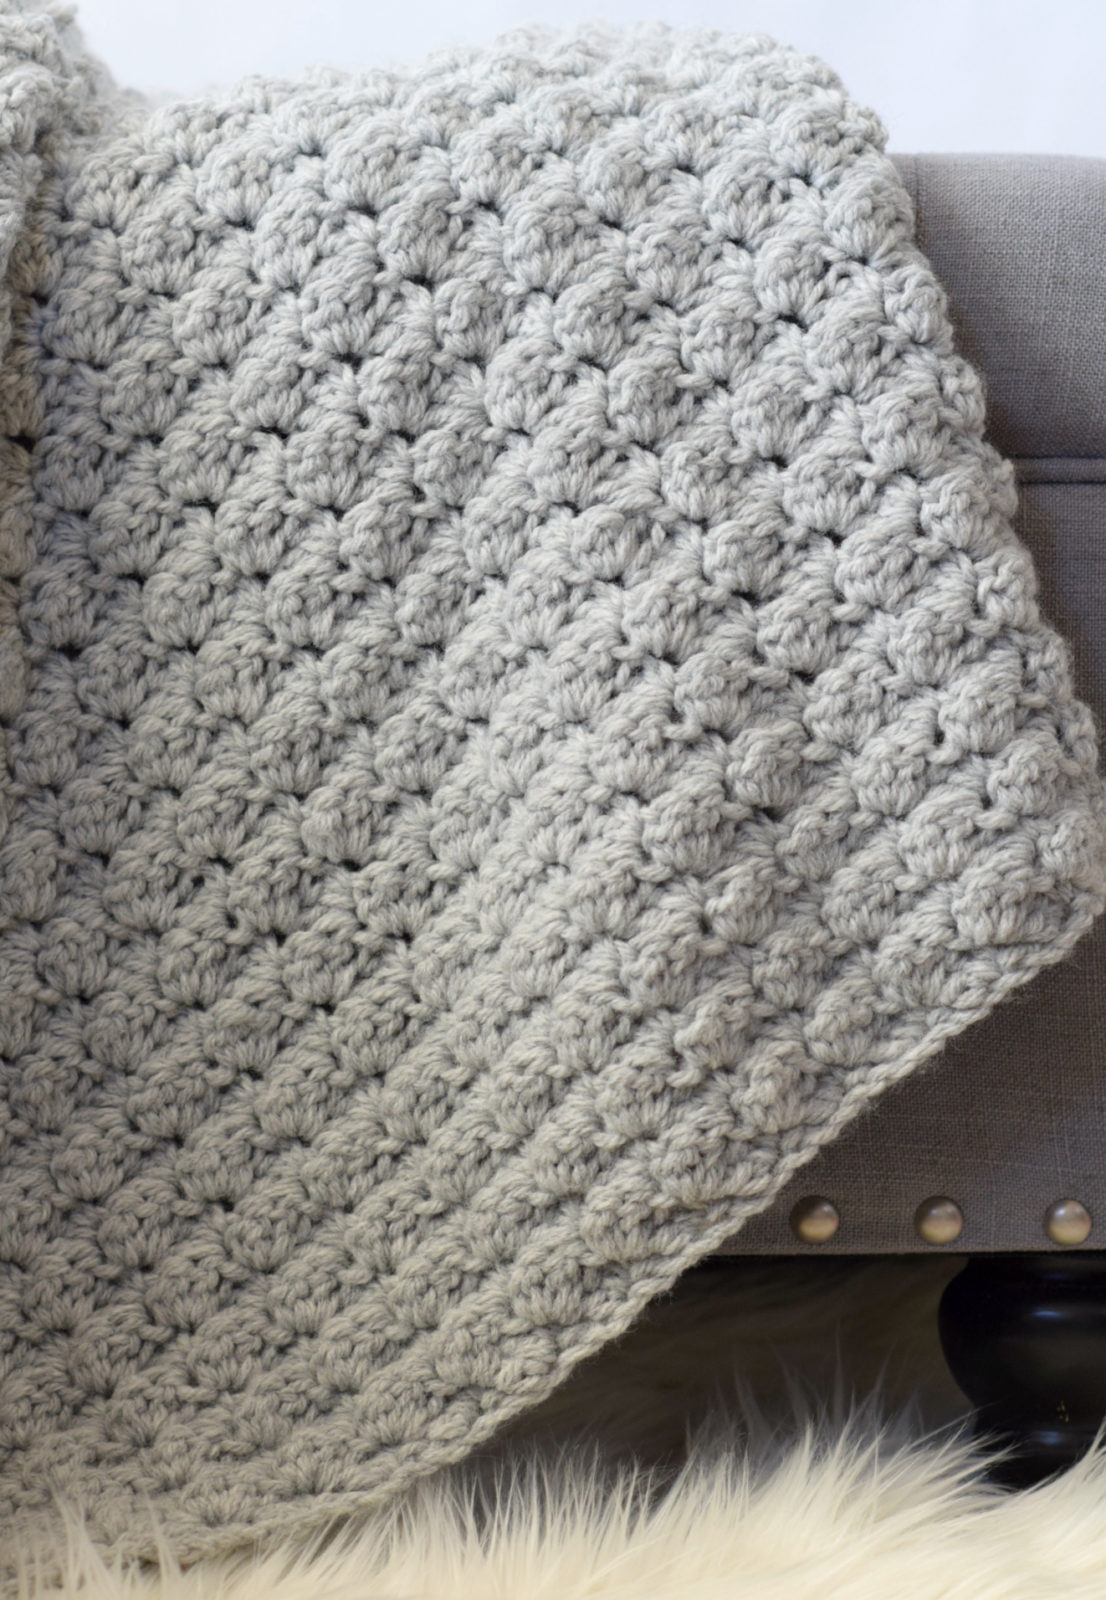 Knitting Patterns For Baby Blankets Easy Simple Crocheted Blanket Go To Pattern Mama In A Stitch